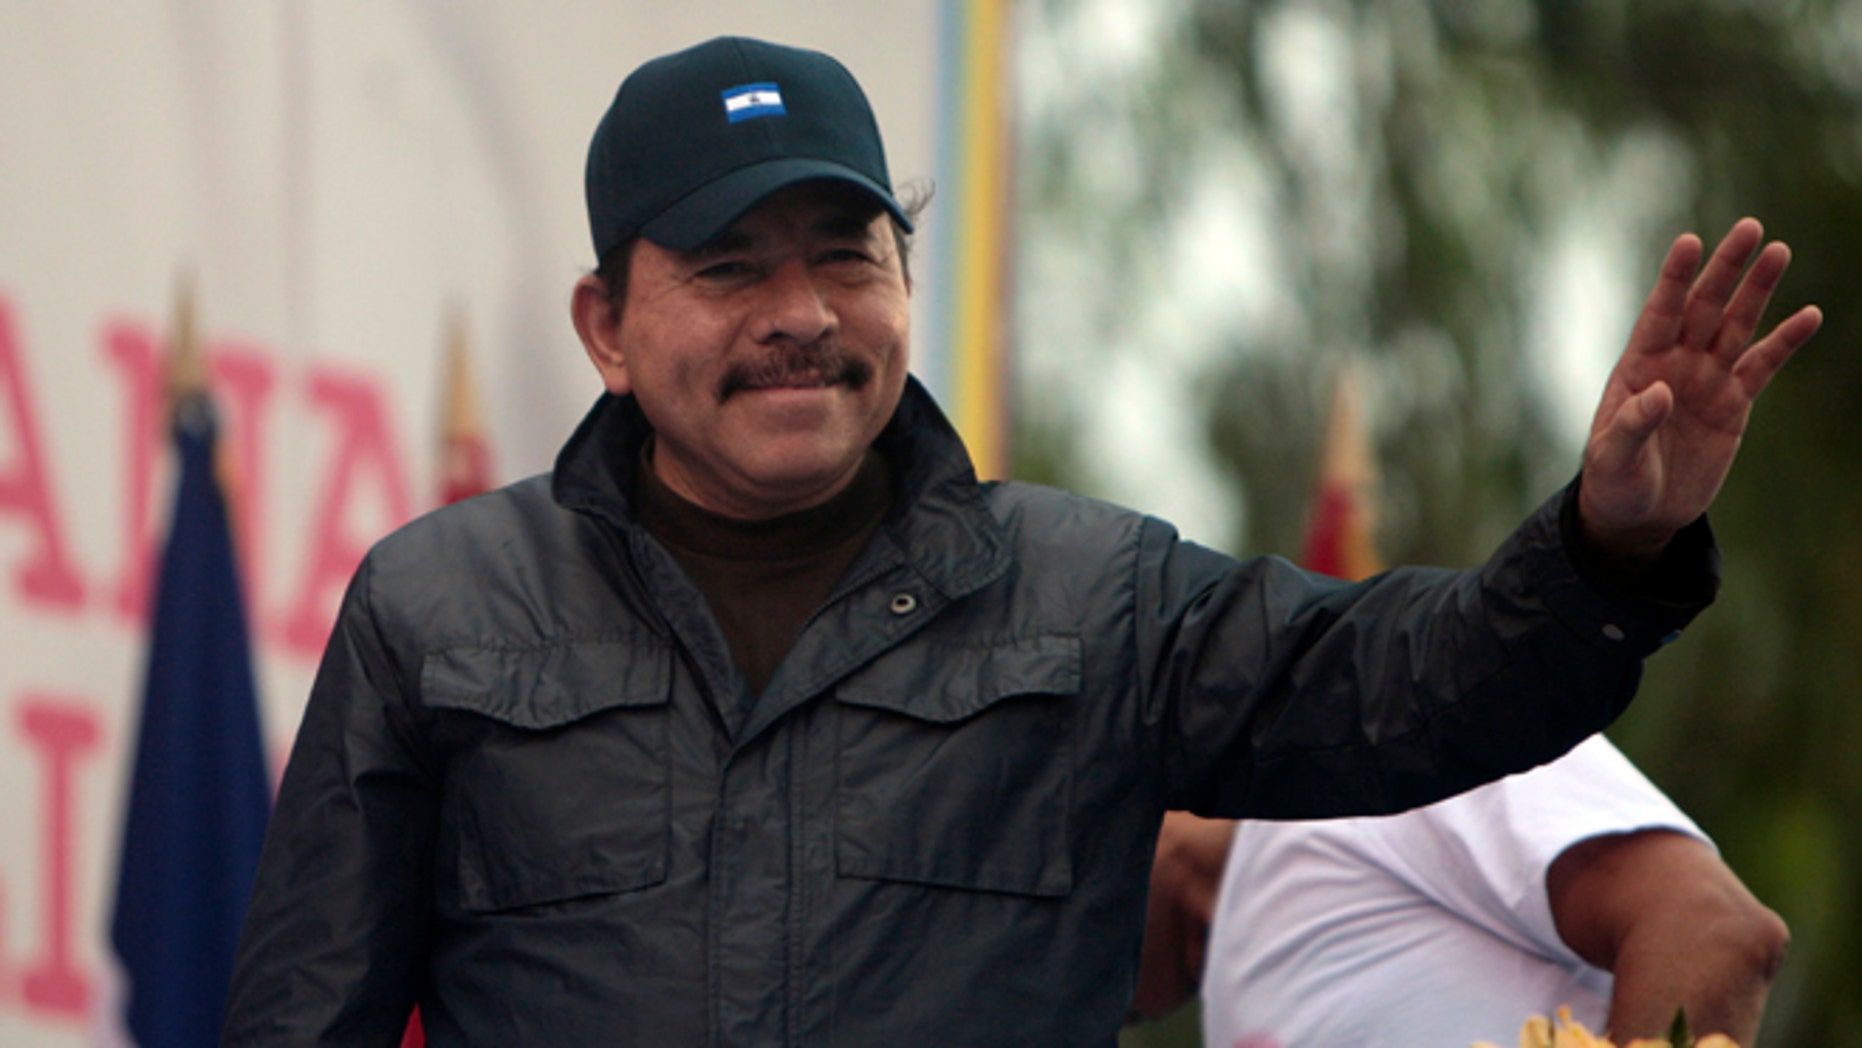 Nicaragua's President Daniel Ortega waves to supporters during an event marking the 32nd anniversary of the Sandinista's withdrawal to Masaya, in Managua, Nicaragua. (AP Photo/Esteban Felix, File)